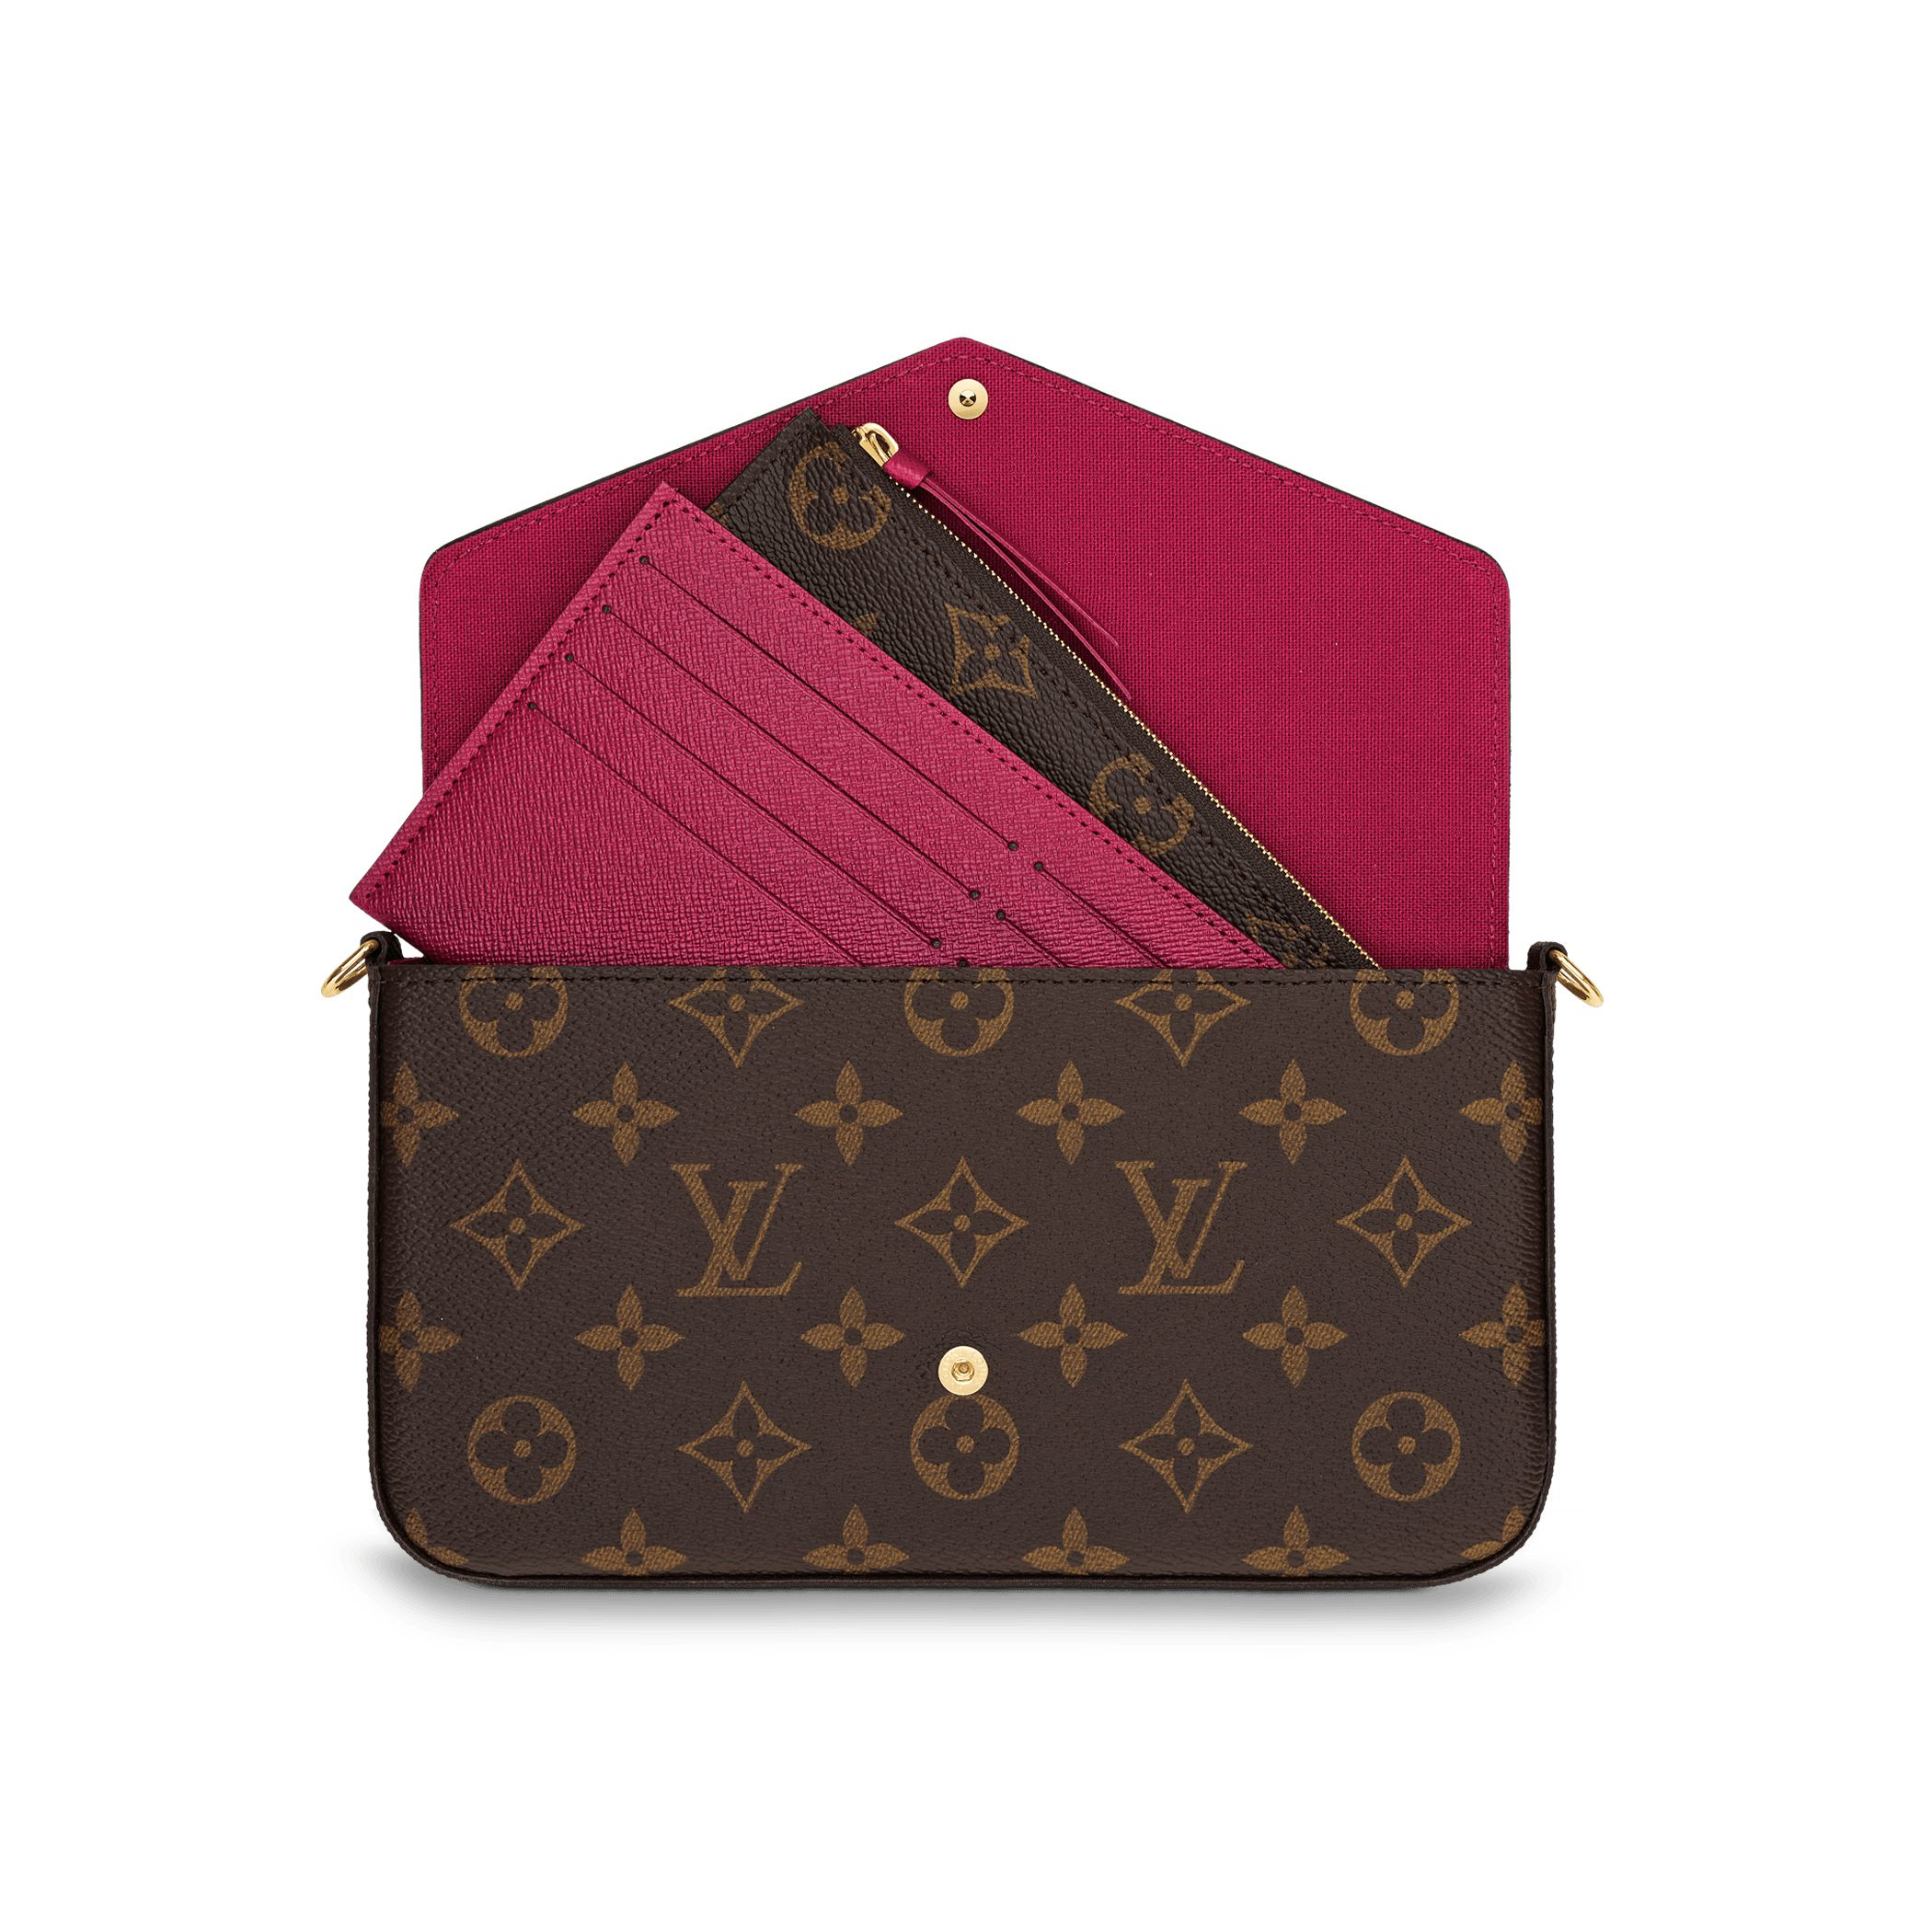 Louis vuitton Felicie Chain Wallet in Brown | Lyst